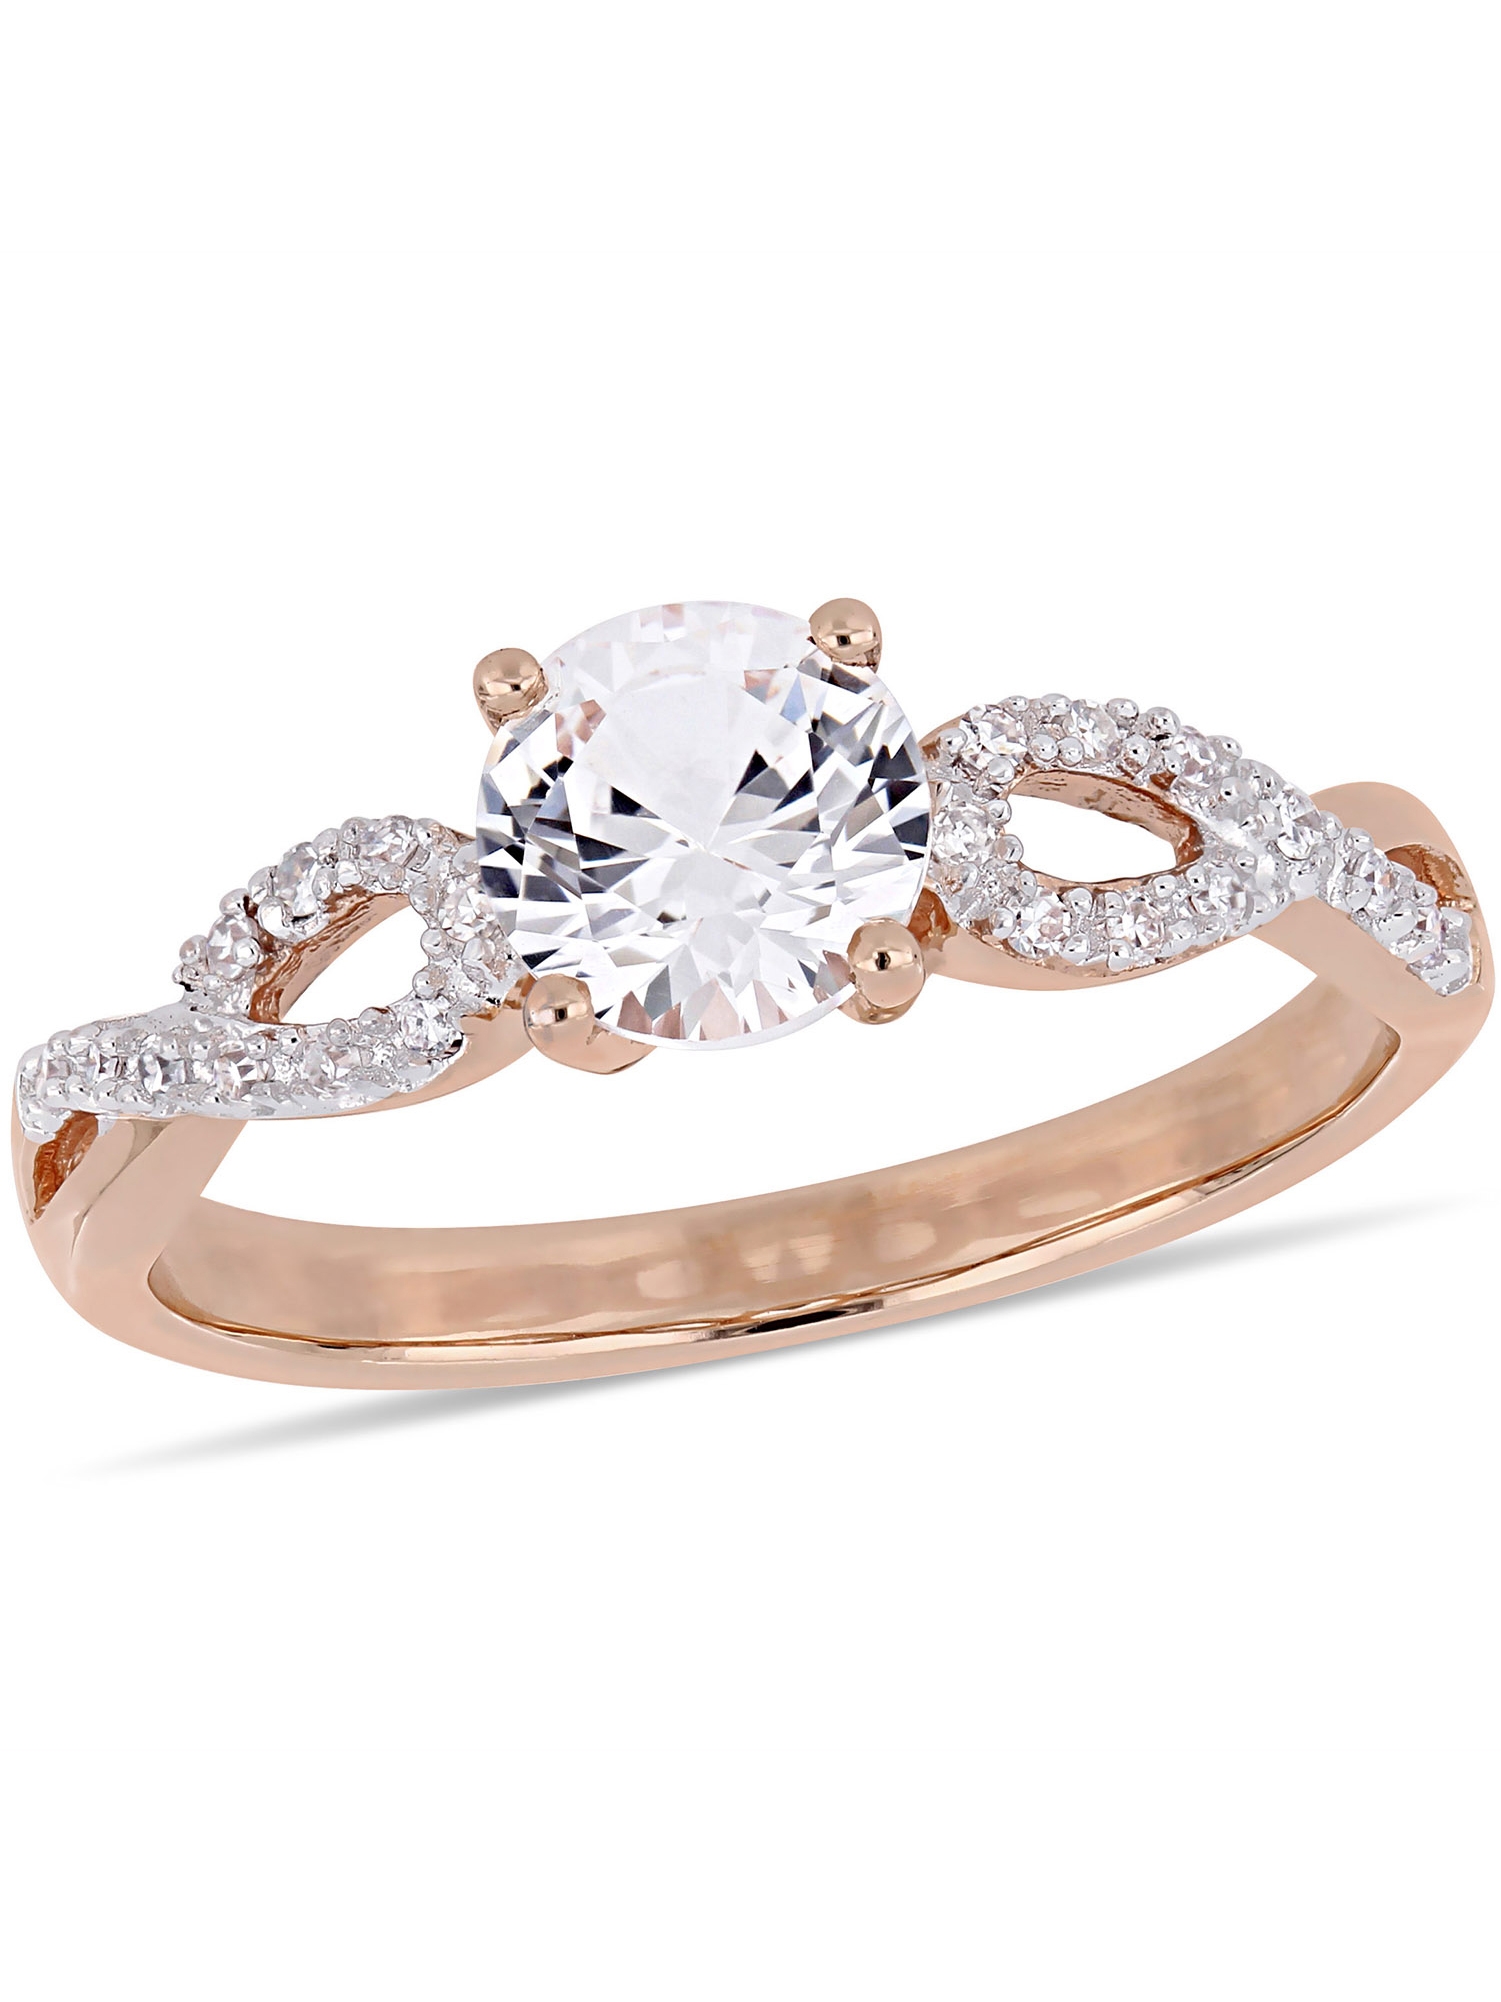 Miabella 1 Carat T.G.W. Created White Sapphire and 1 10 Carat T.W Diamond 10kt Rose Gold Infinity Engagement Ring by Delmar